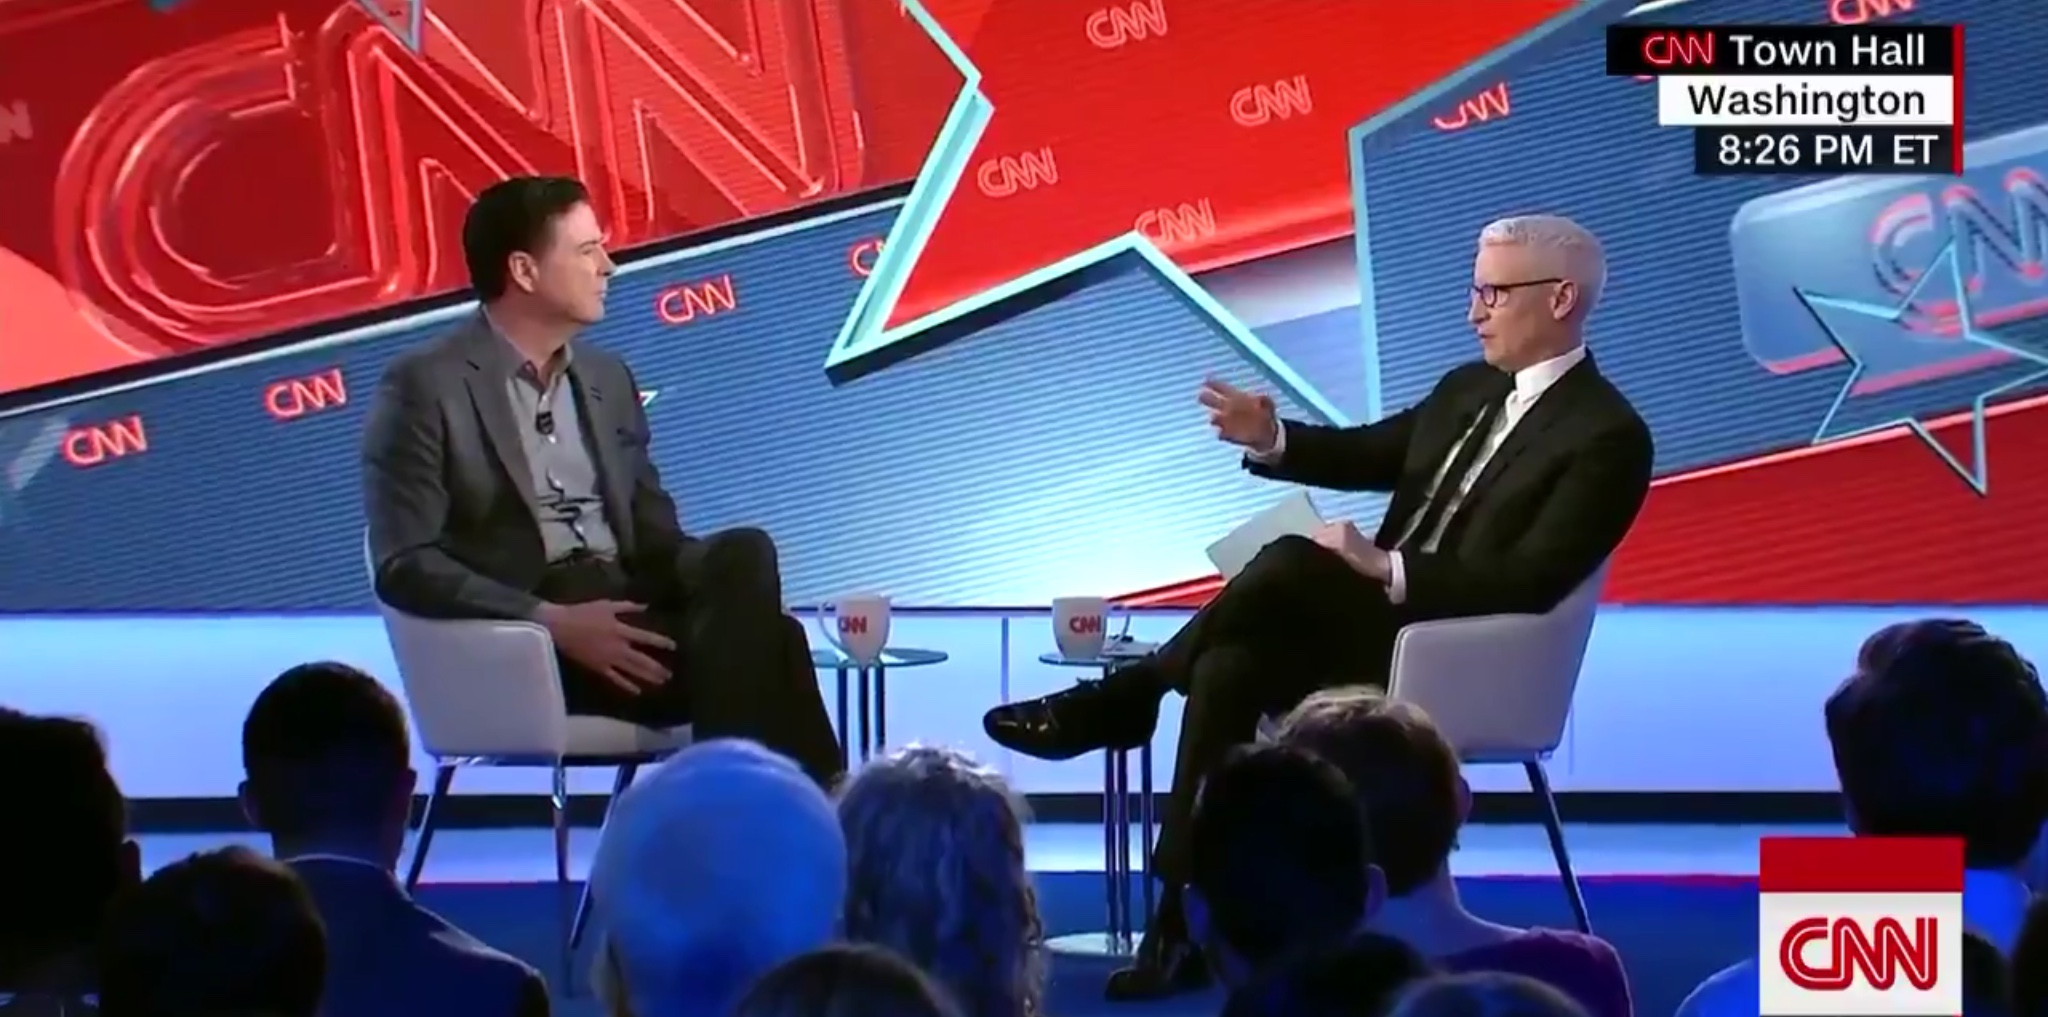 Former FBI Director James Comey defends the discredited Steele dossier at a CNN town hall segment, May 9, 2019. CNN screenshot via Twitter.